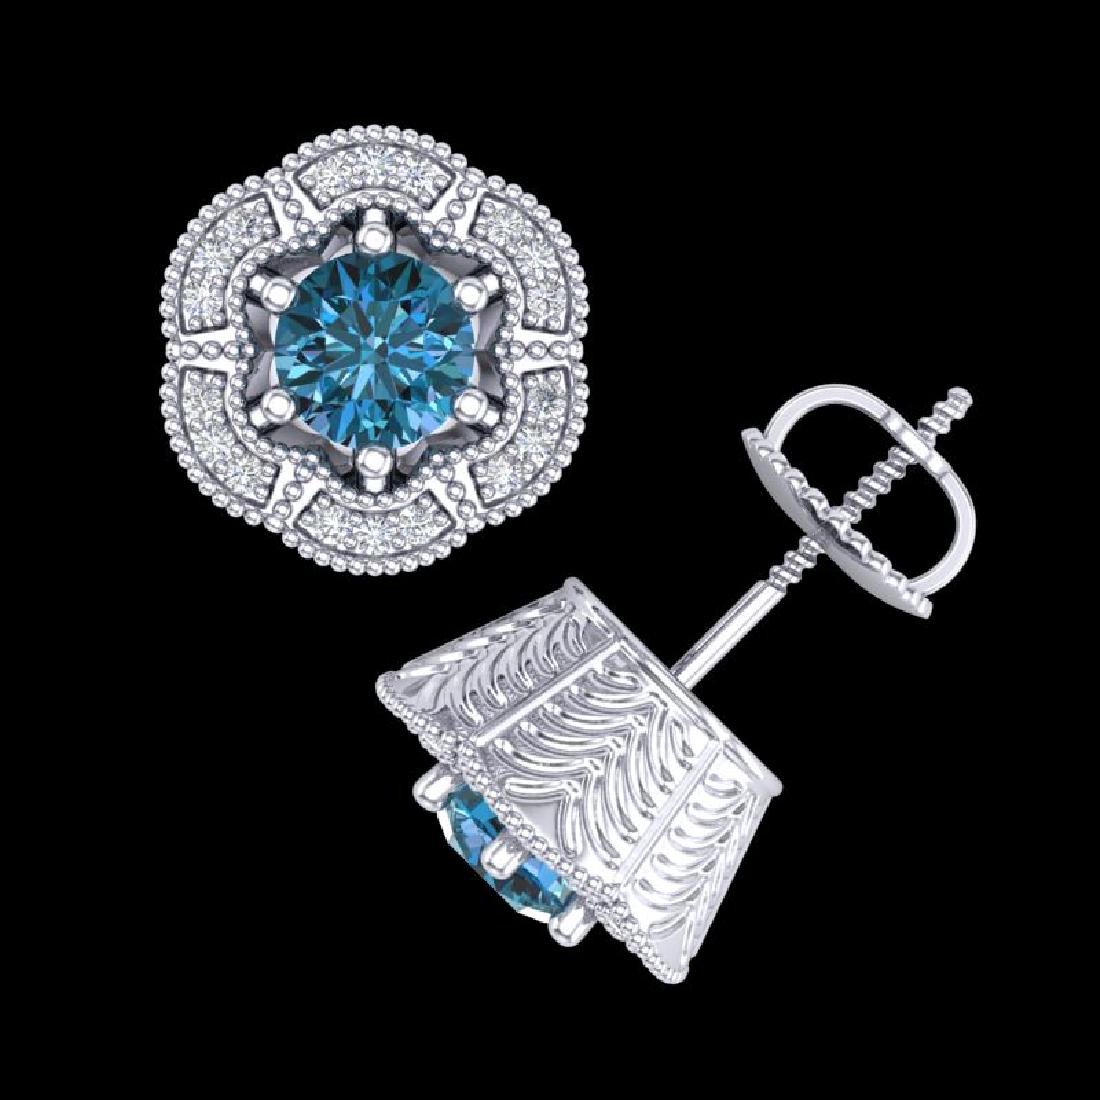 1.51 CTW Fancy Intense Blue Diamond Art Deco Stud - 3